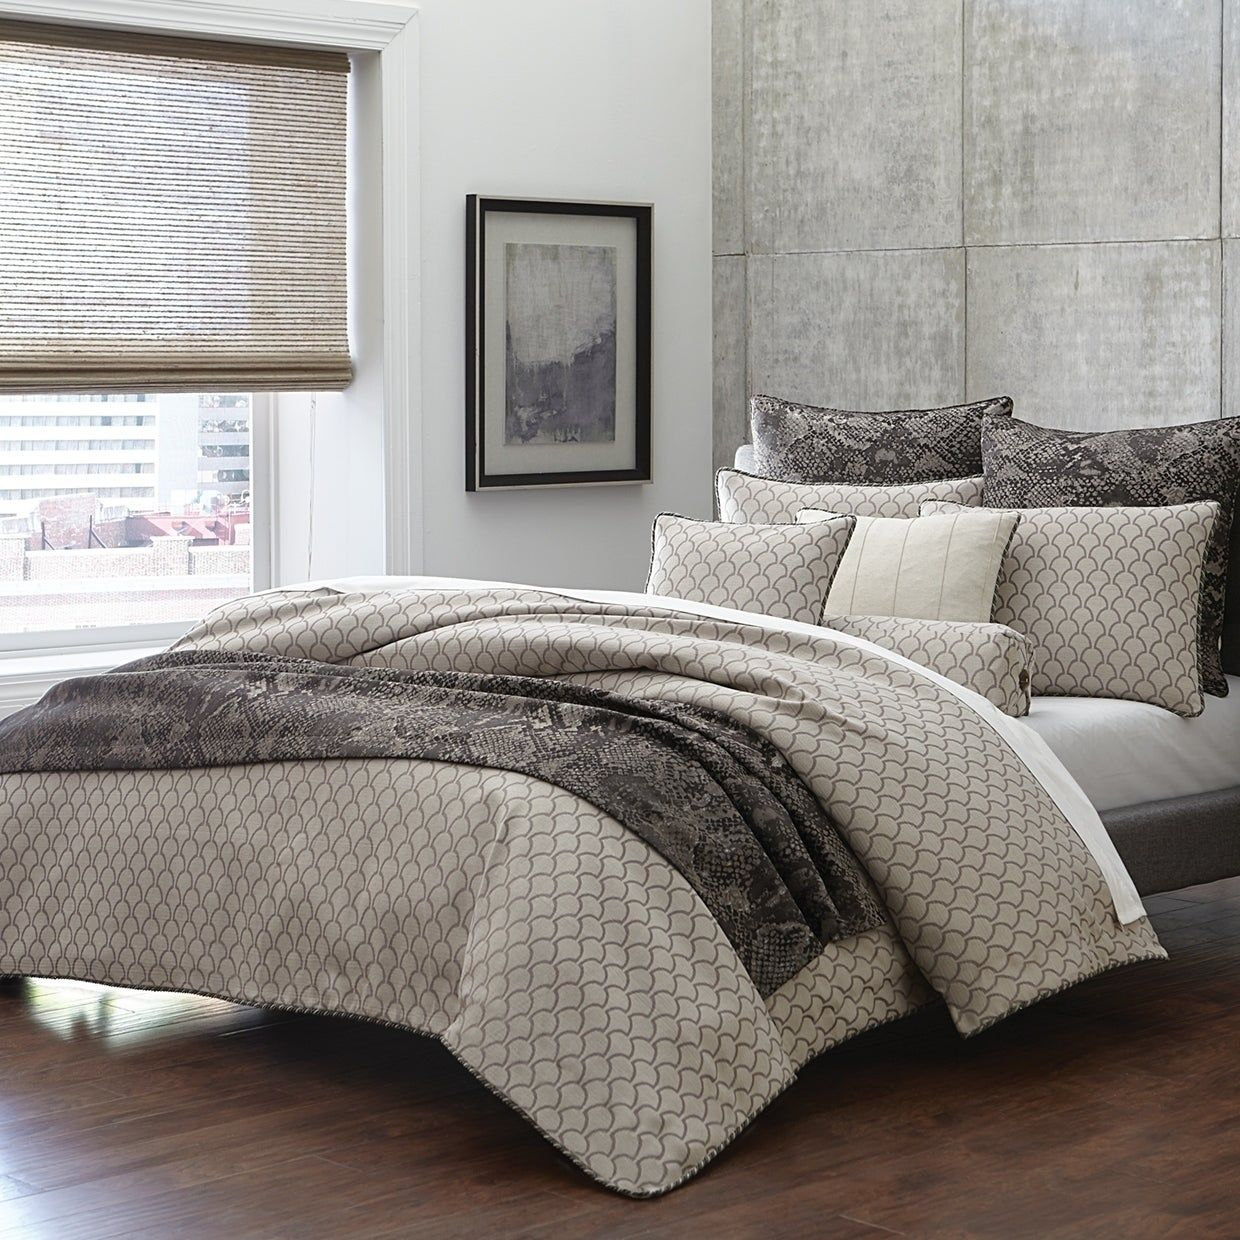 Online Shopping Bedding Furniture Electronics Jewelry Clothing More In 2020 Luxury Comforter Sets Luxury Bedding Sets Comforter Sets